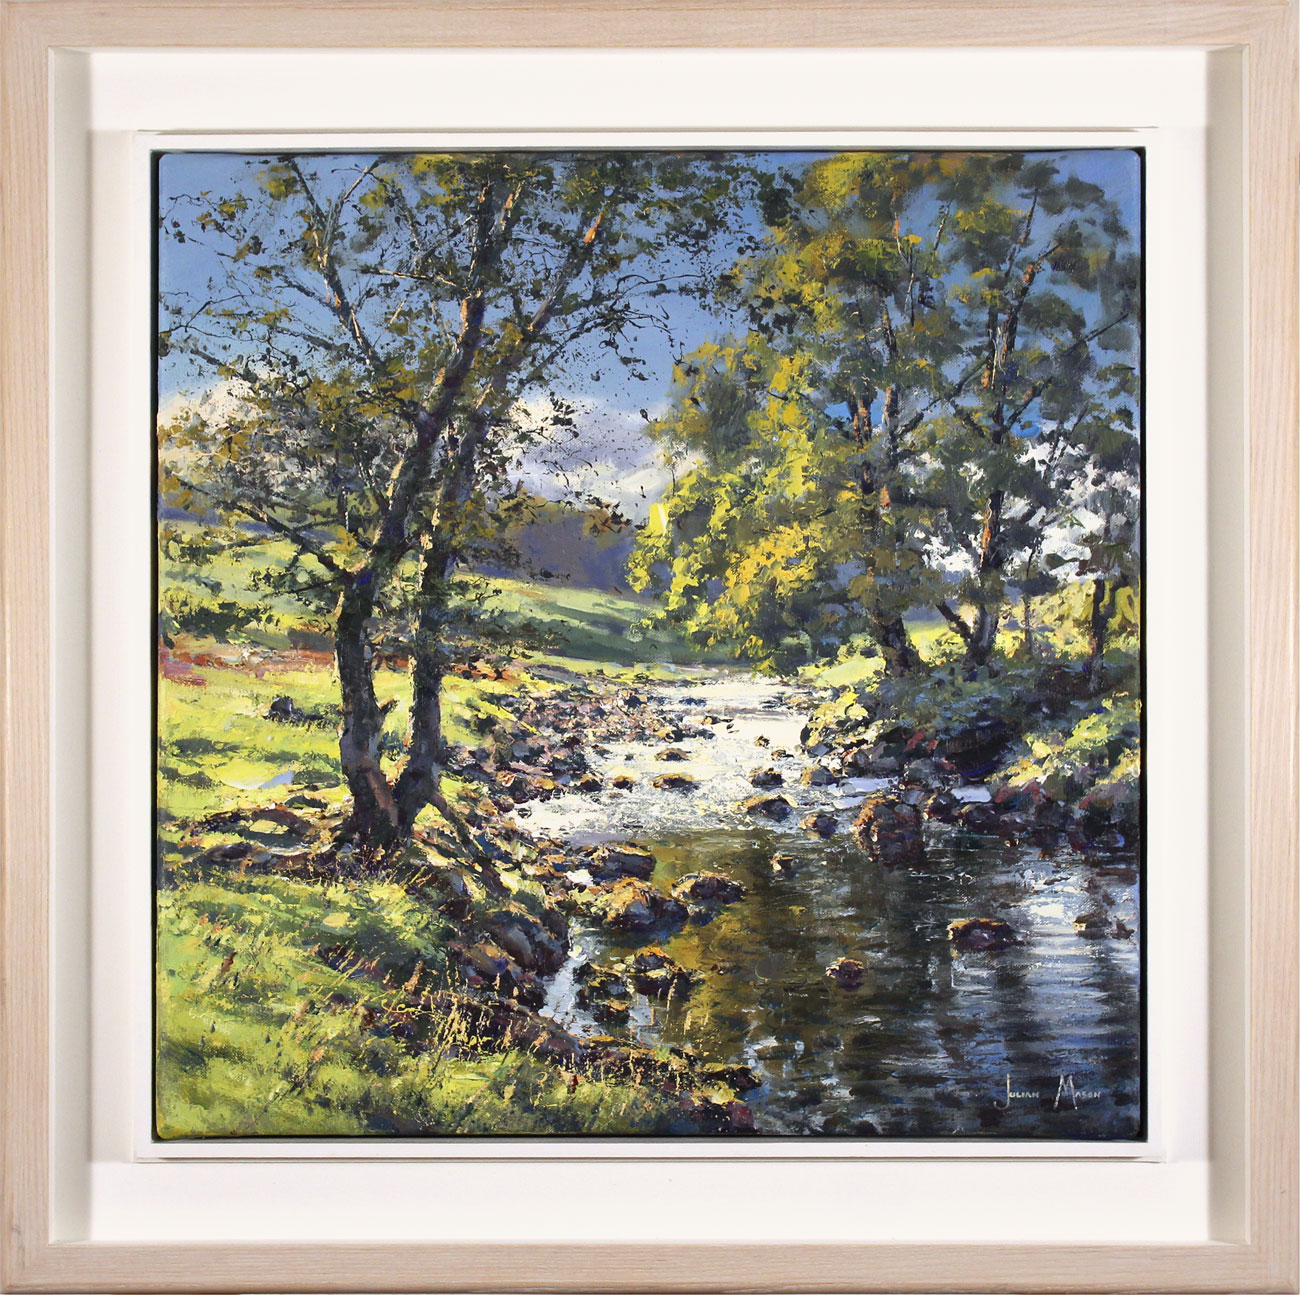 Julian Mason, Original oil painting on canvas, Dales Way, Langstrothdale, click to enlarge